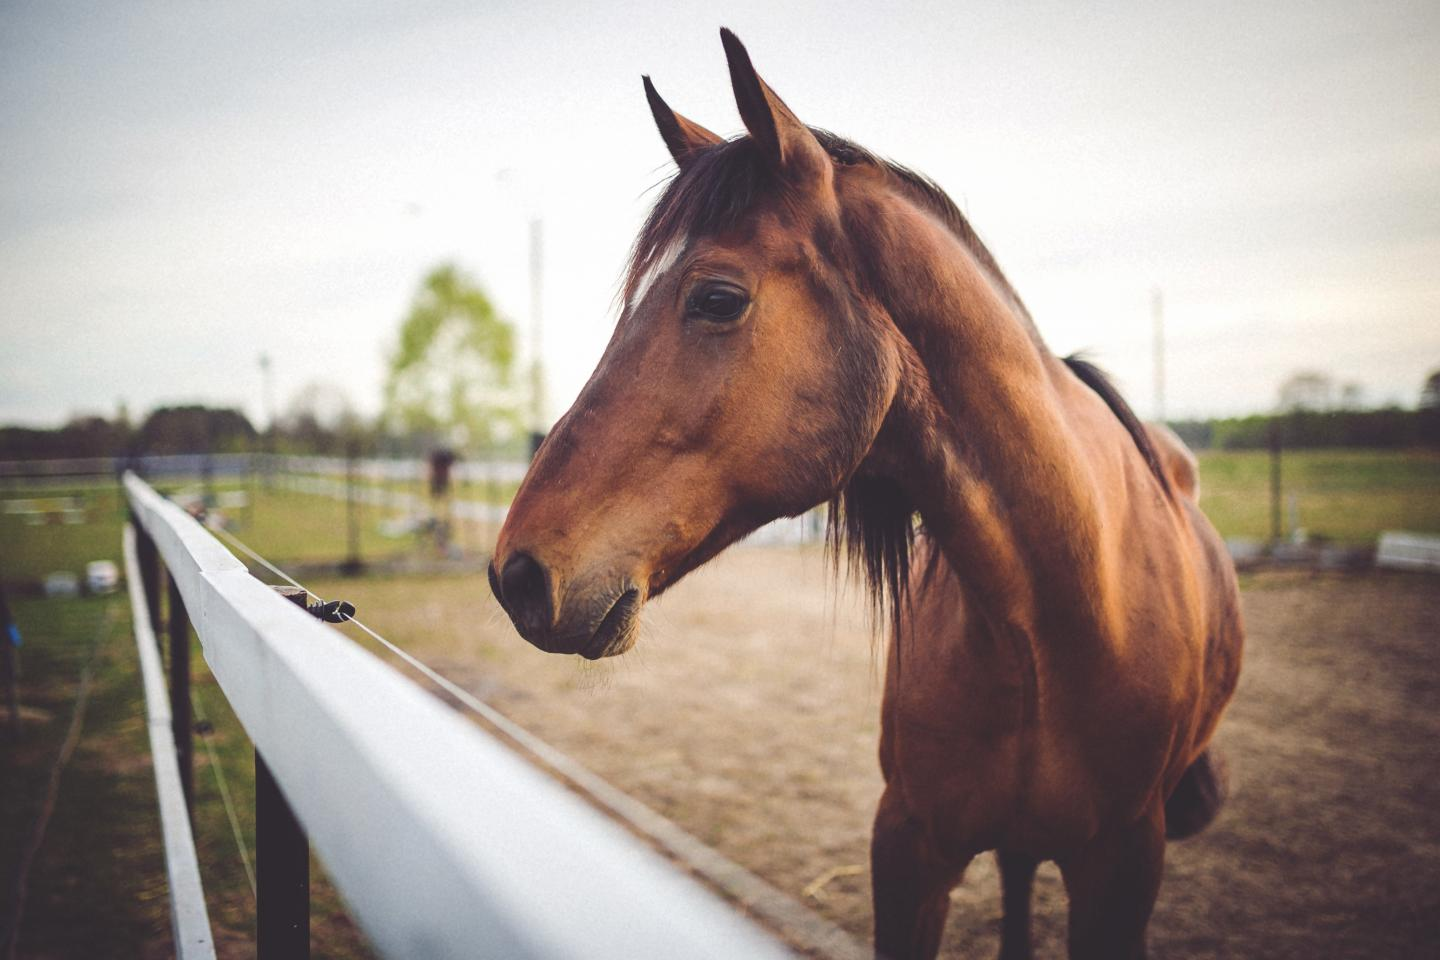 Flu vaccines for horses haven't been updated in more than 25 years, but researchers have developed a new live equine influenza vaccine that's safe and more protective. Credit: University of Rochester Medical Center